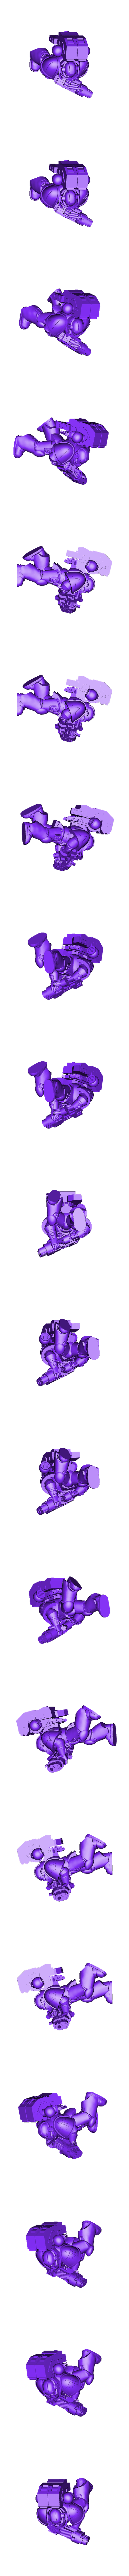 2_PlasmaCannon.stl Download free STL file Angelic Space Soldiers with Heavy Weapons • Template to 3D print, PhysUdo